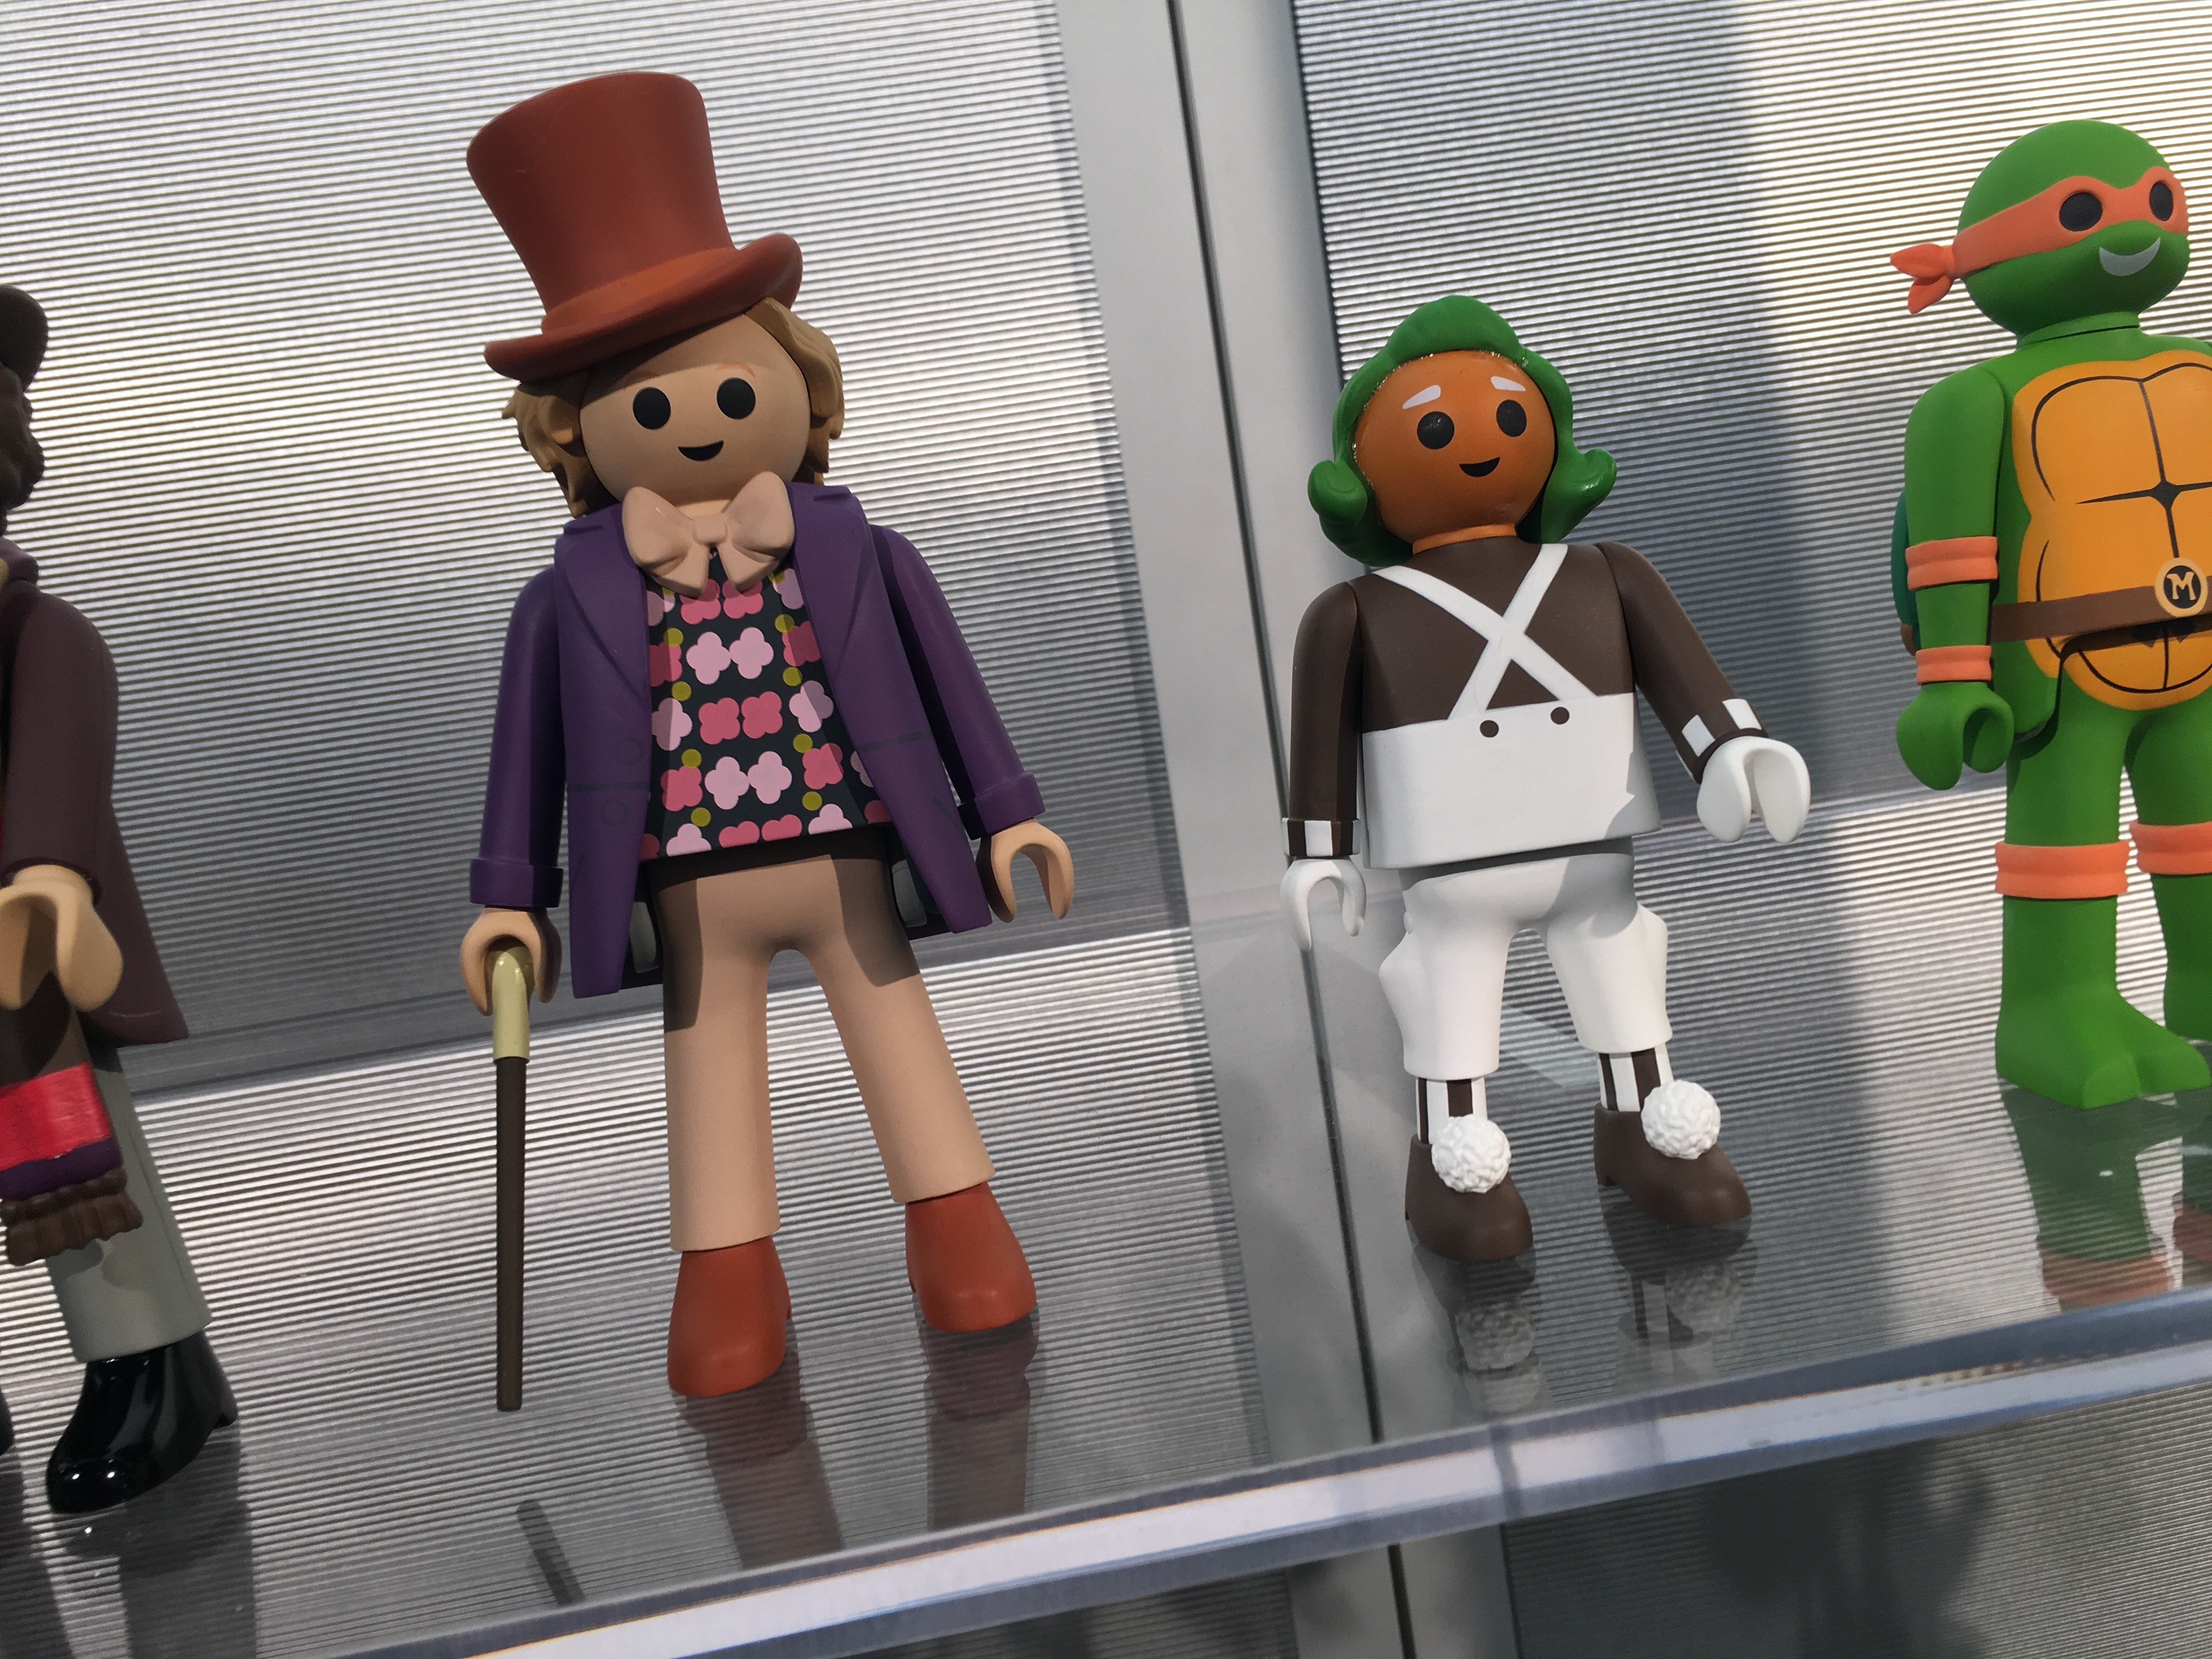 Willy Wonka oversize Playmobil-style figures. Whaaaa!